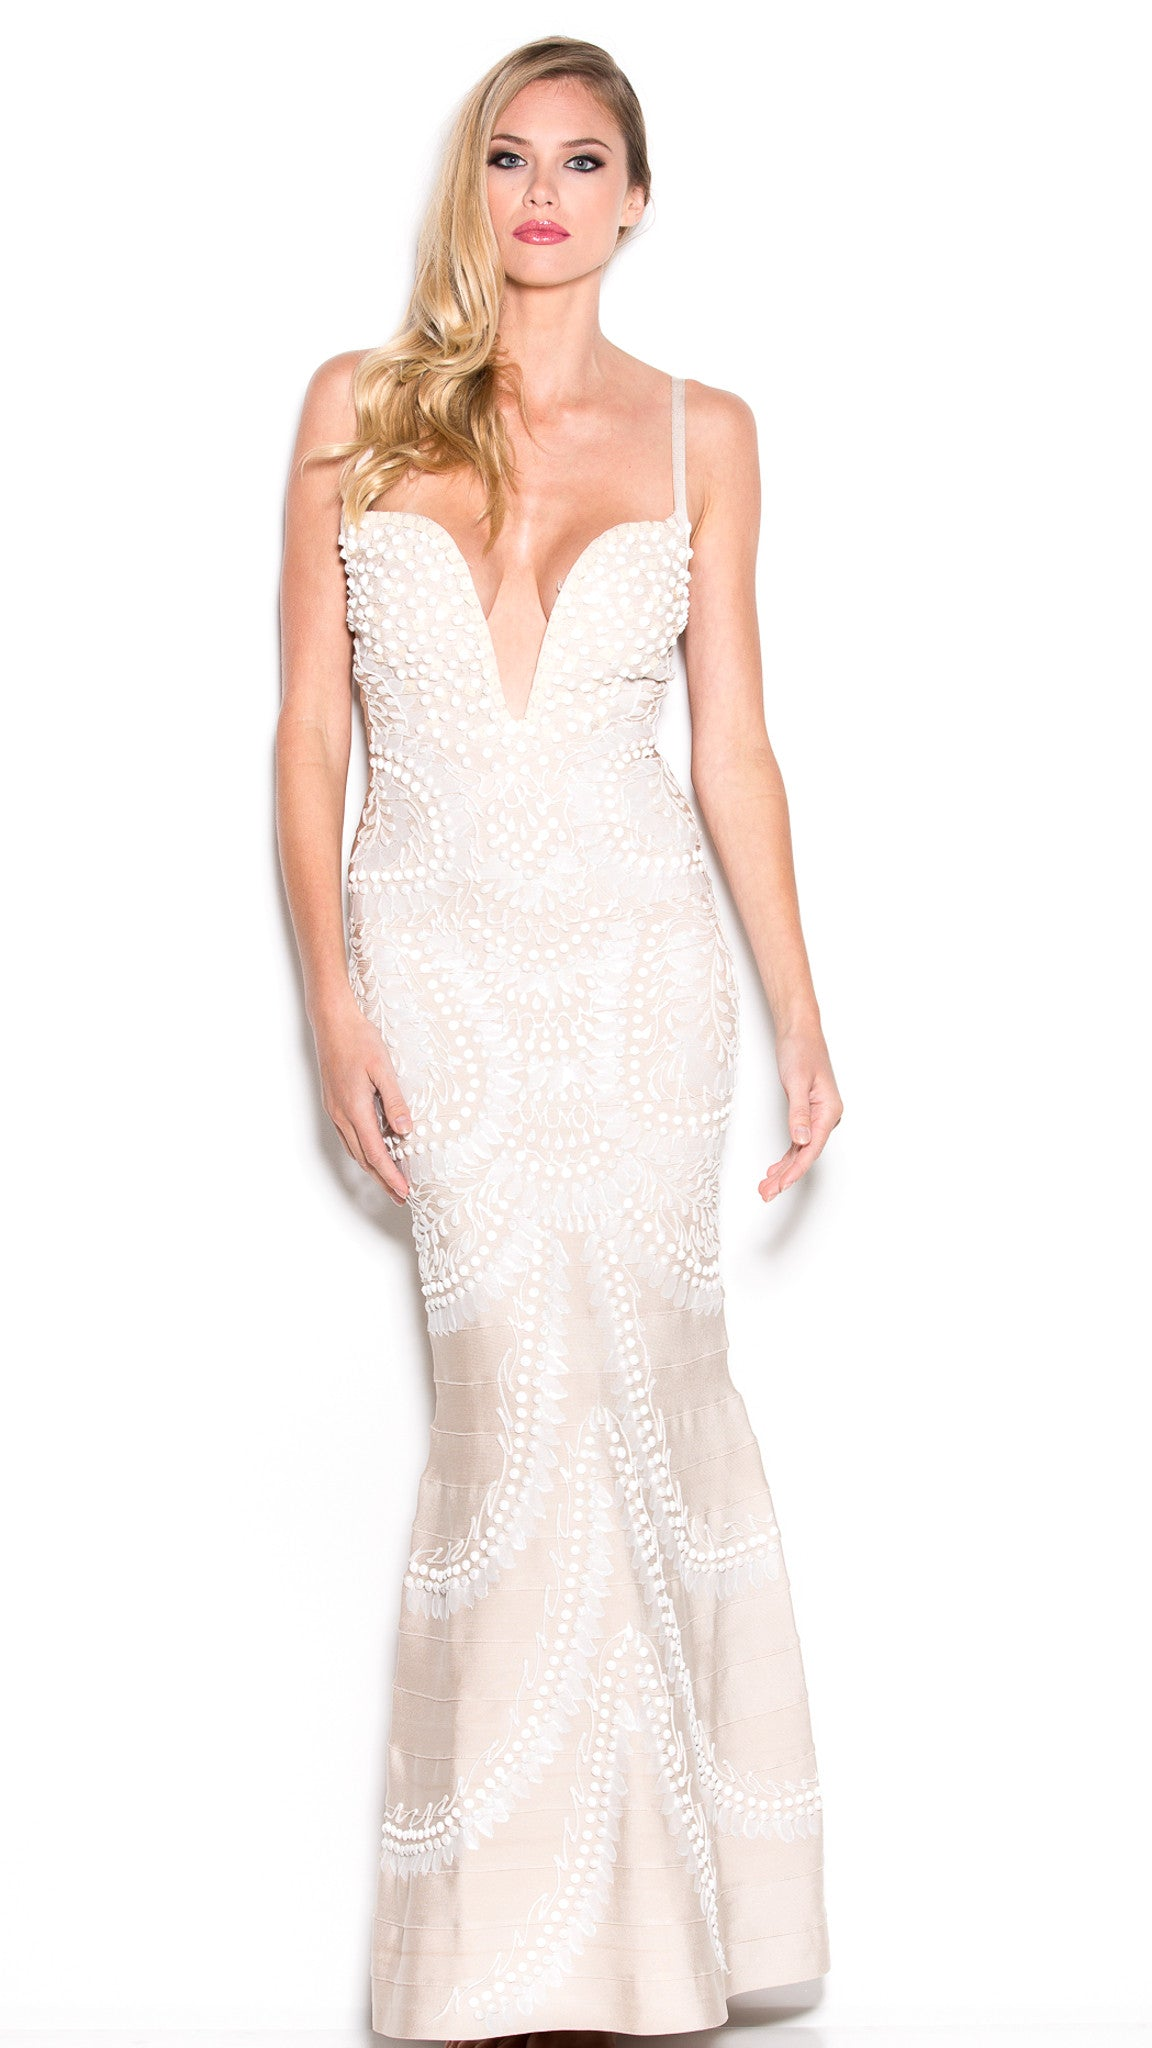 JATORIA BANDAGE GOWN IN NUDE WITH WHITE